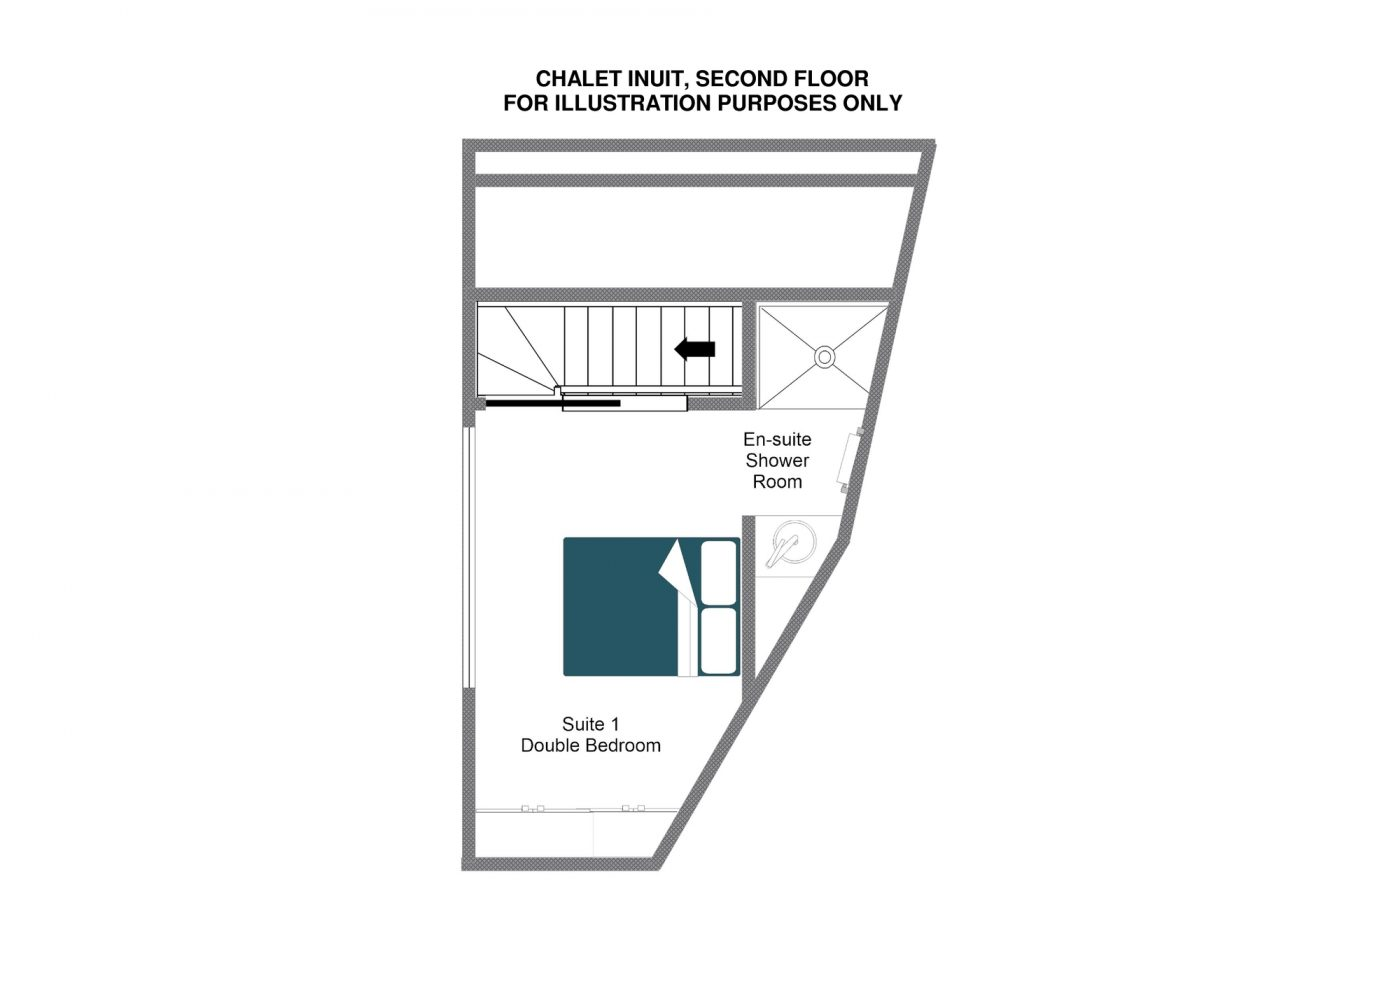 Chalet Inuit (Contactless Chalet Catering) Val d'Isere Floor Plan 4